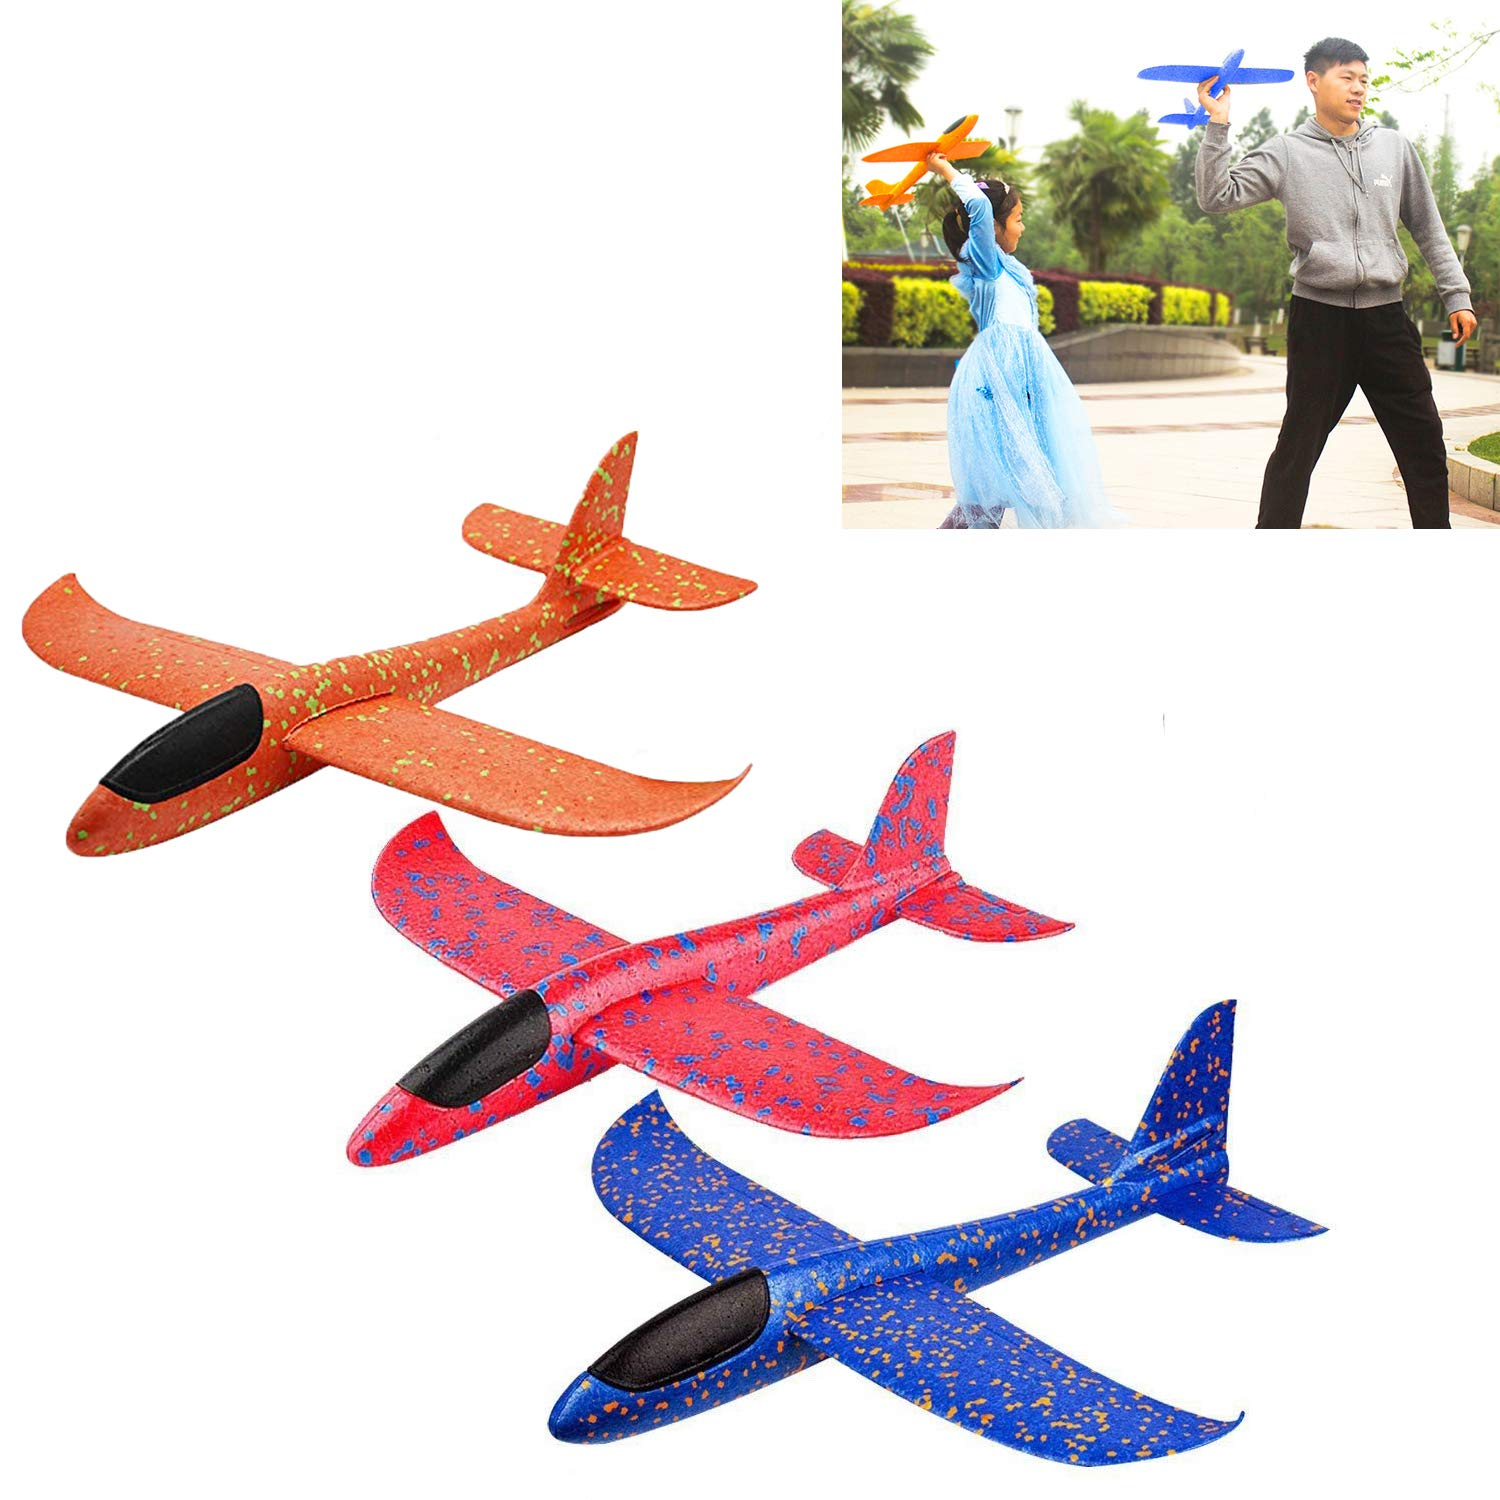 YIJIAOYUN 3Pcs Large Foam Airplanes Durable Glider Plane Flying Toy Outdoor Sports